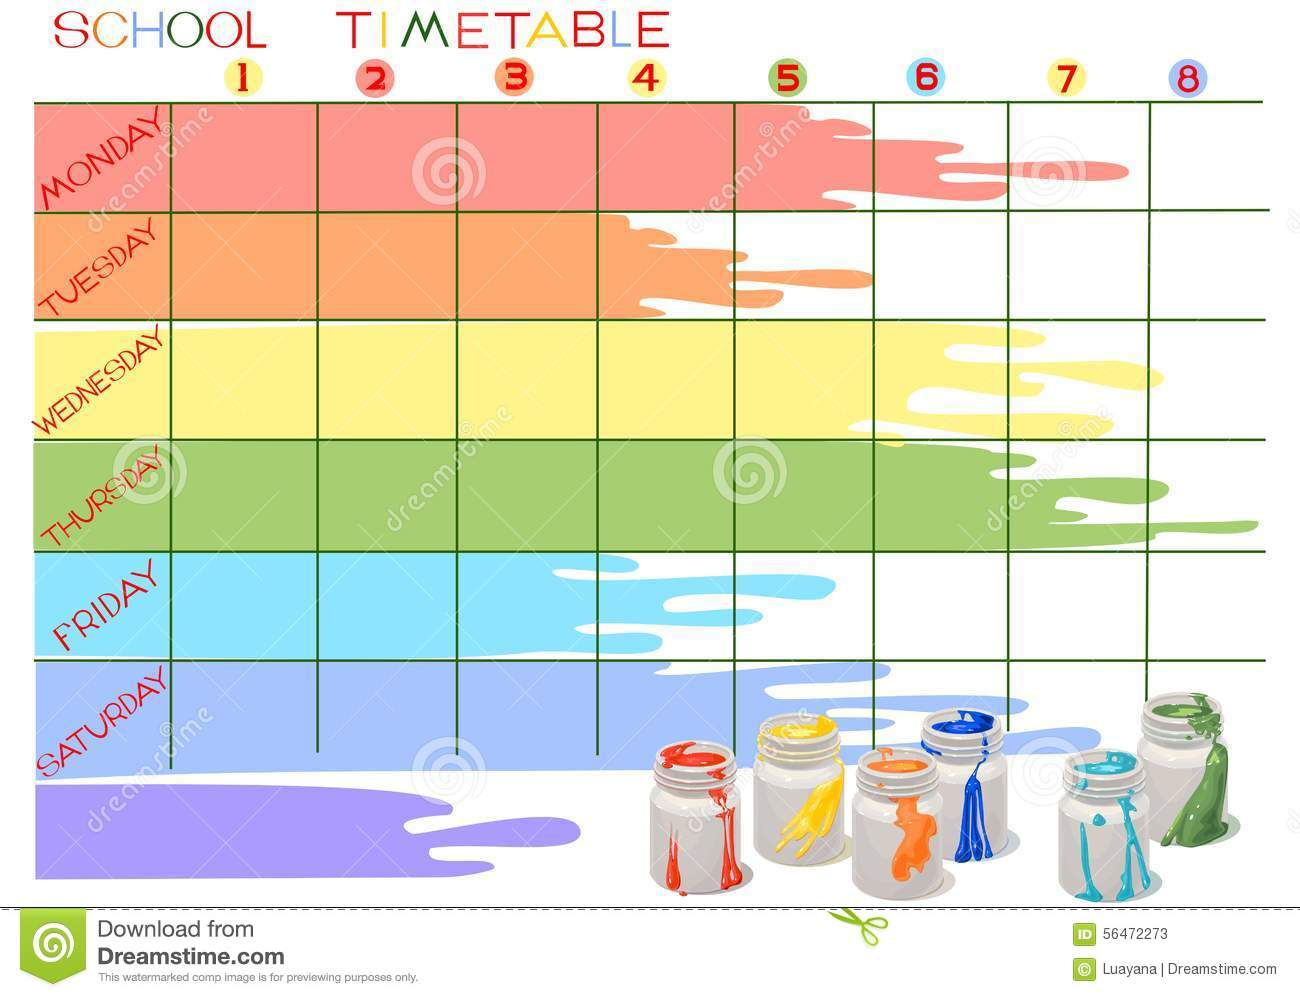 how to create a timetable for school